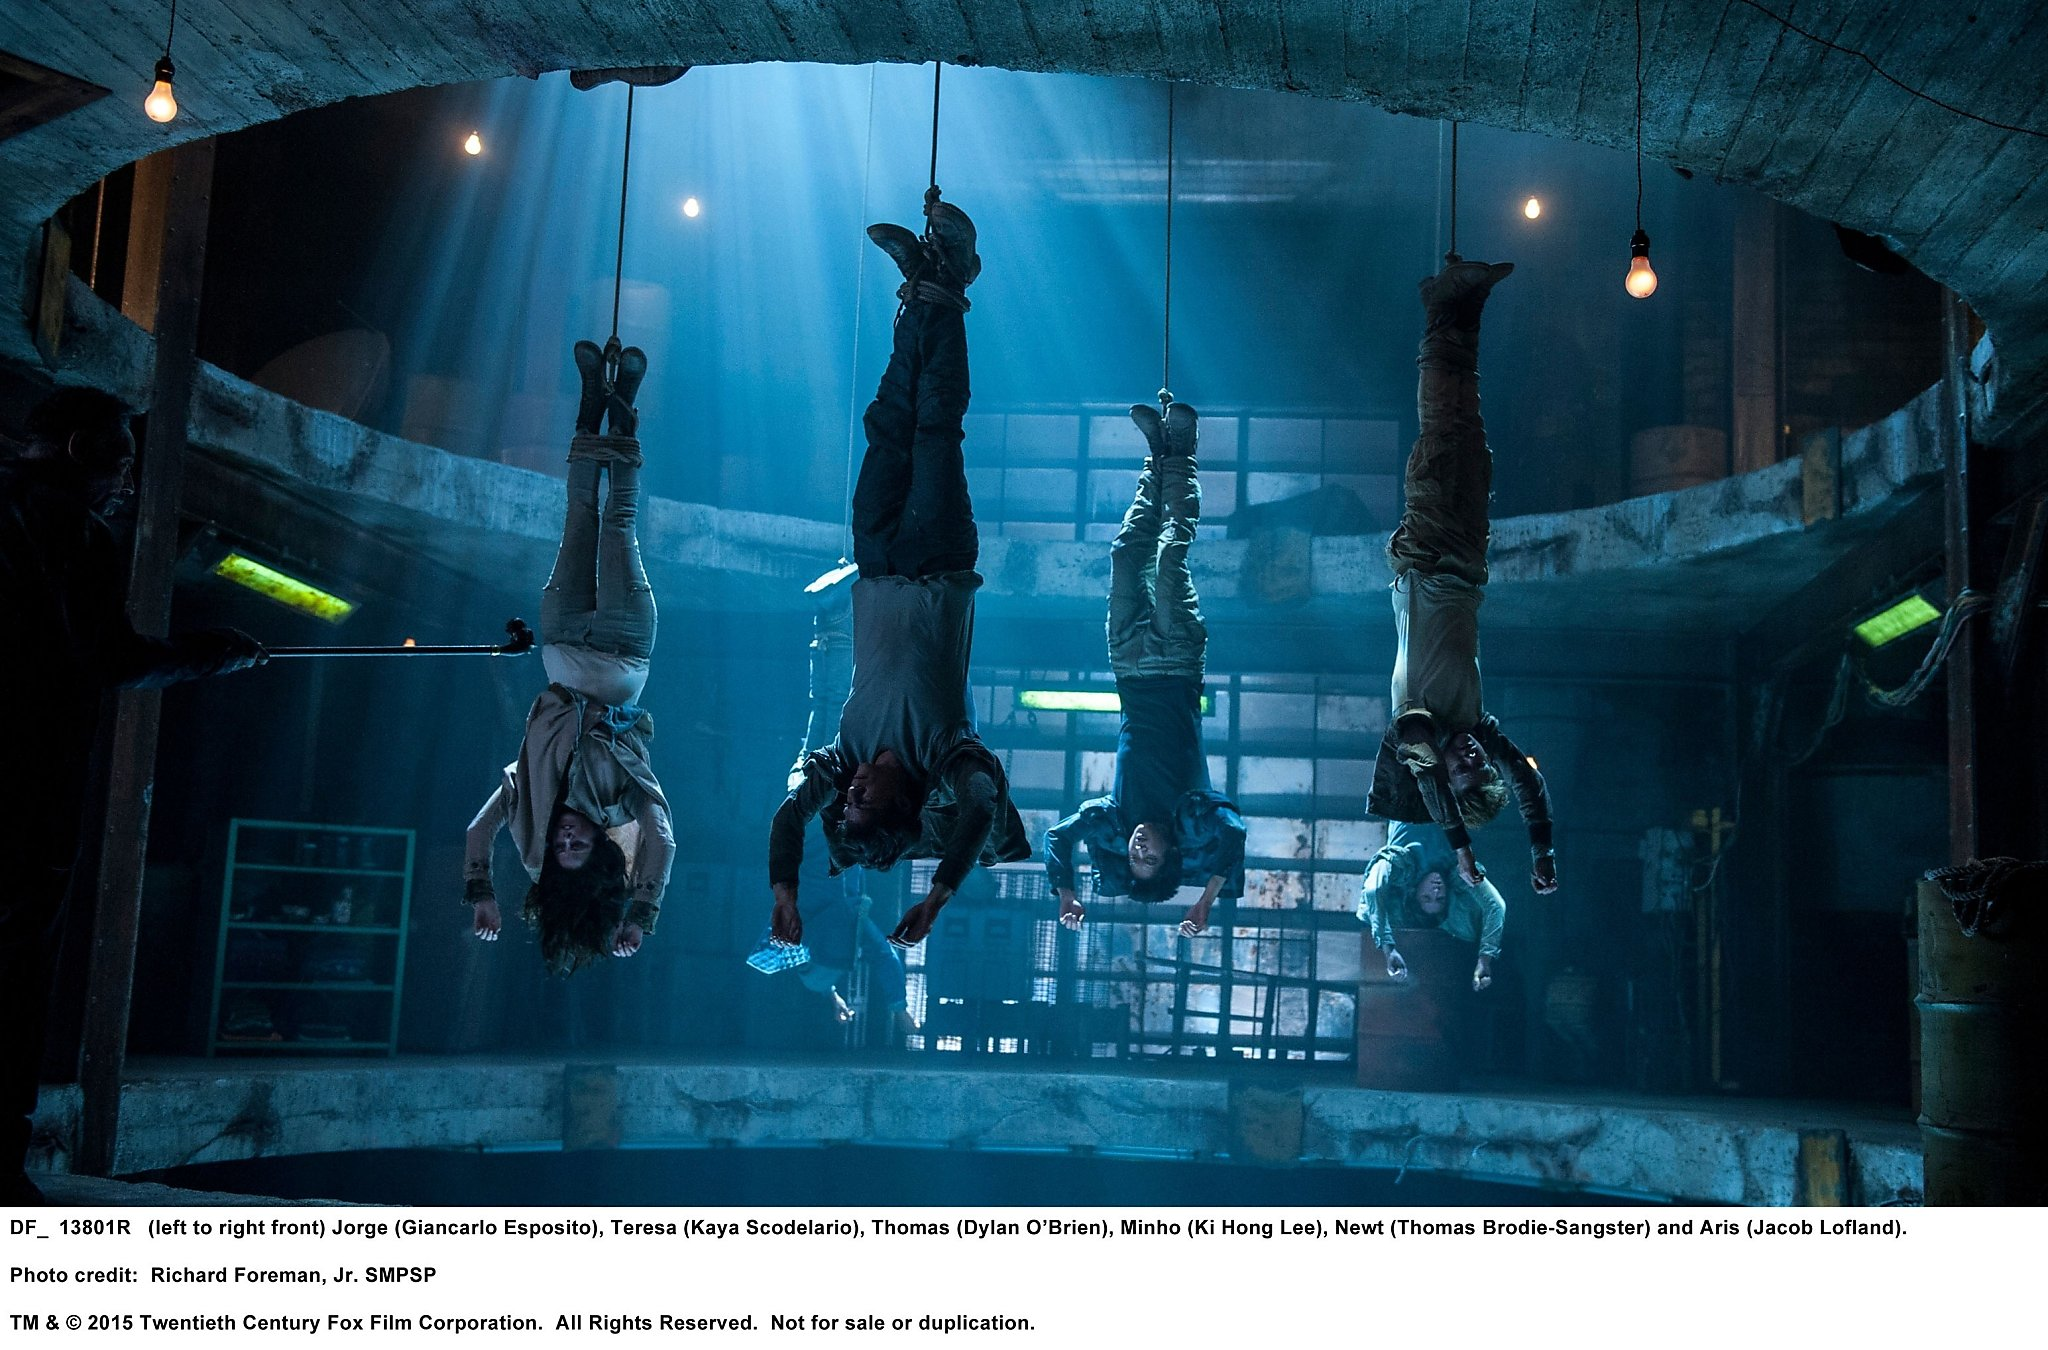 Lots of action in stock sequel to 'Maze Runner' - SFGate